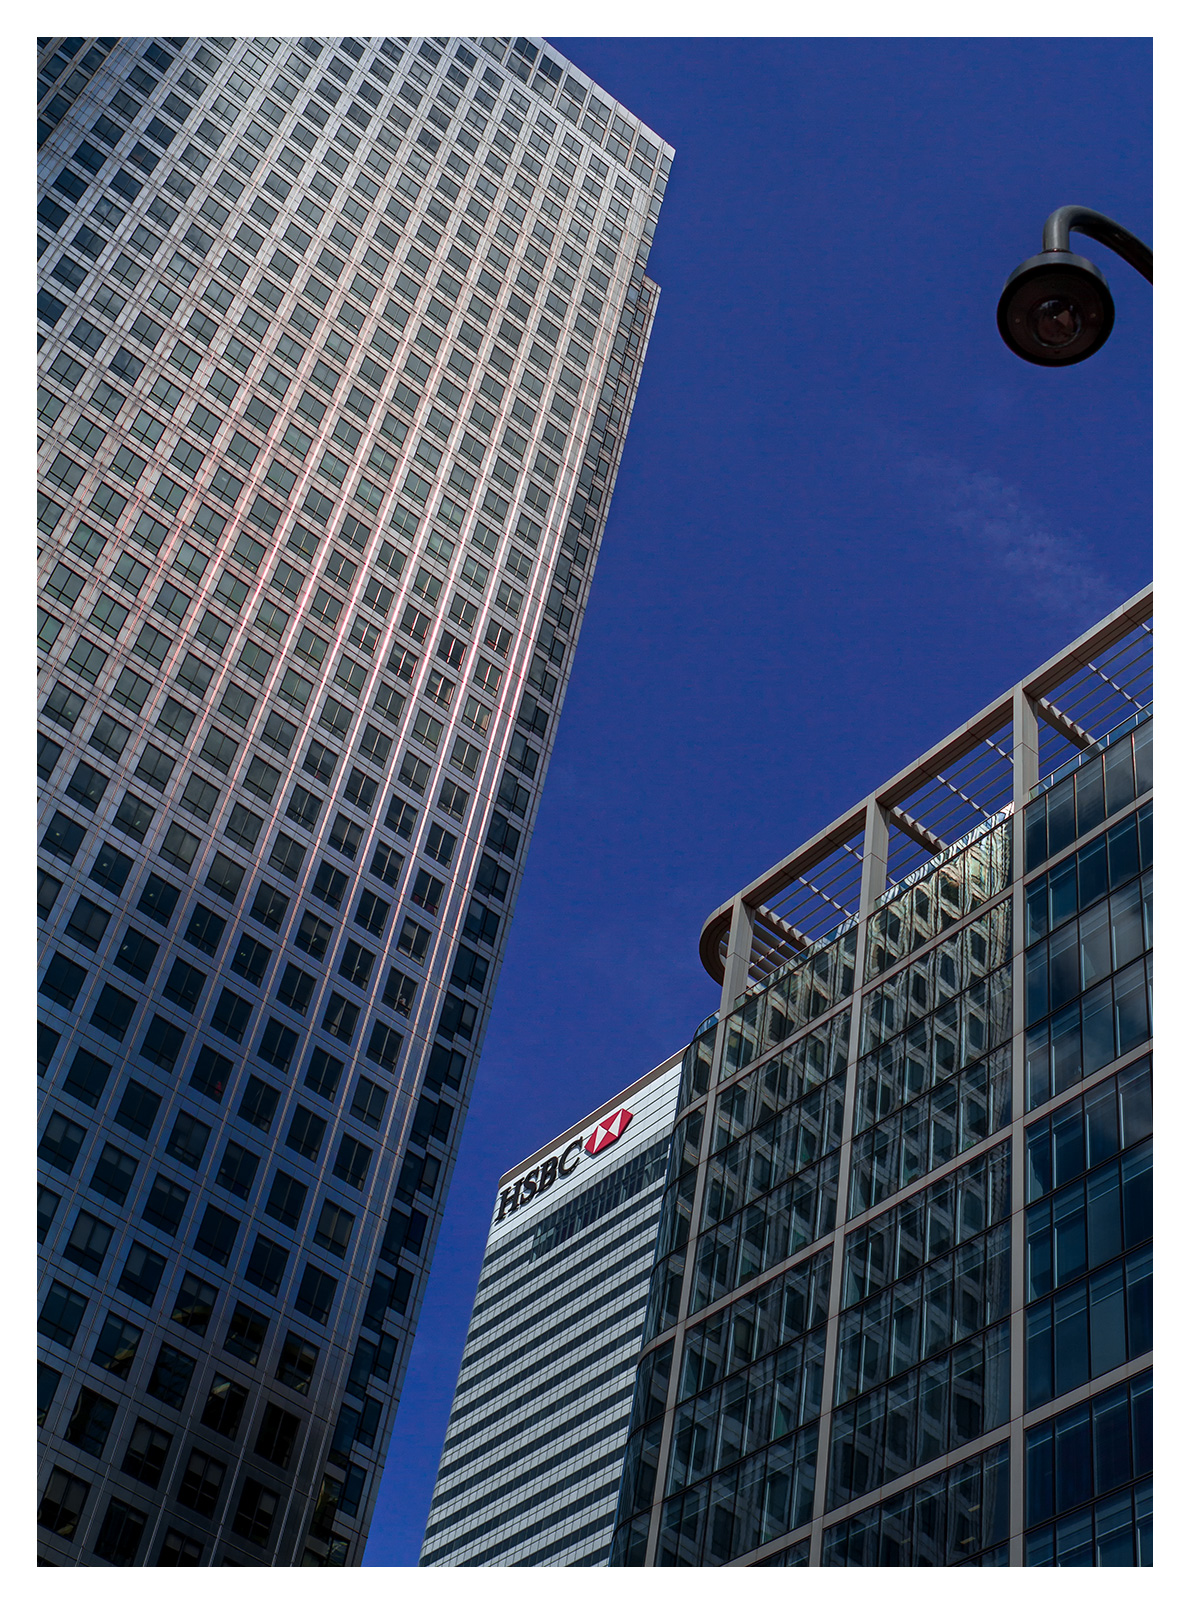 London Architecture, HSBC Bank, Canada Square, Canary Wharf, London.